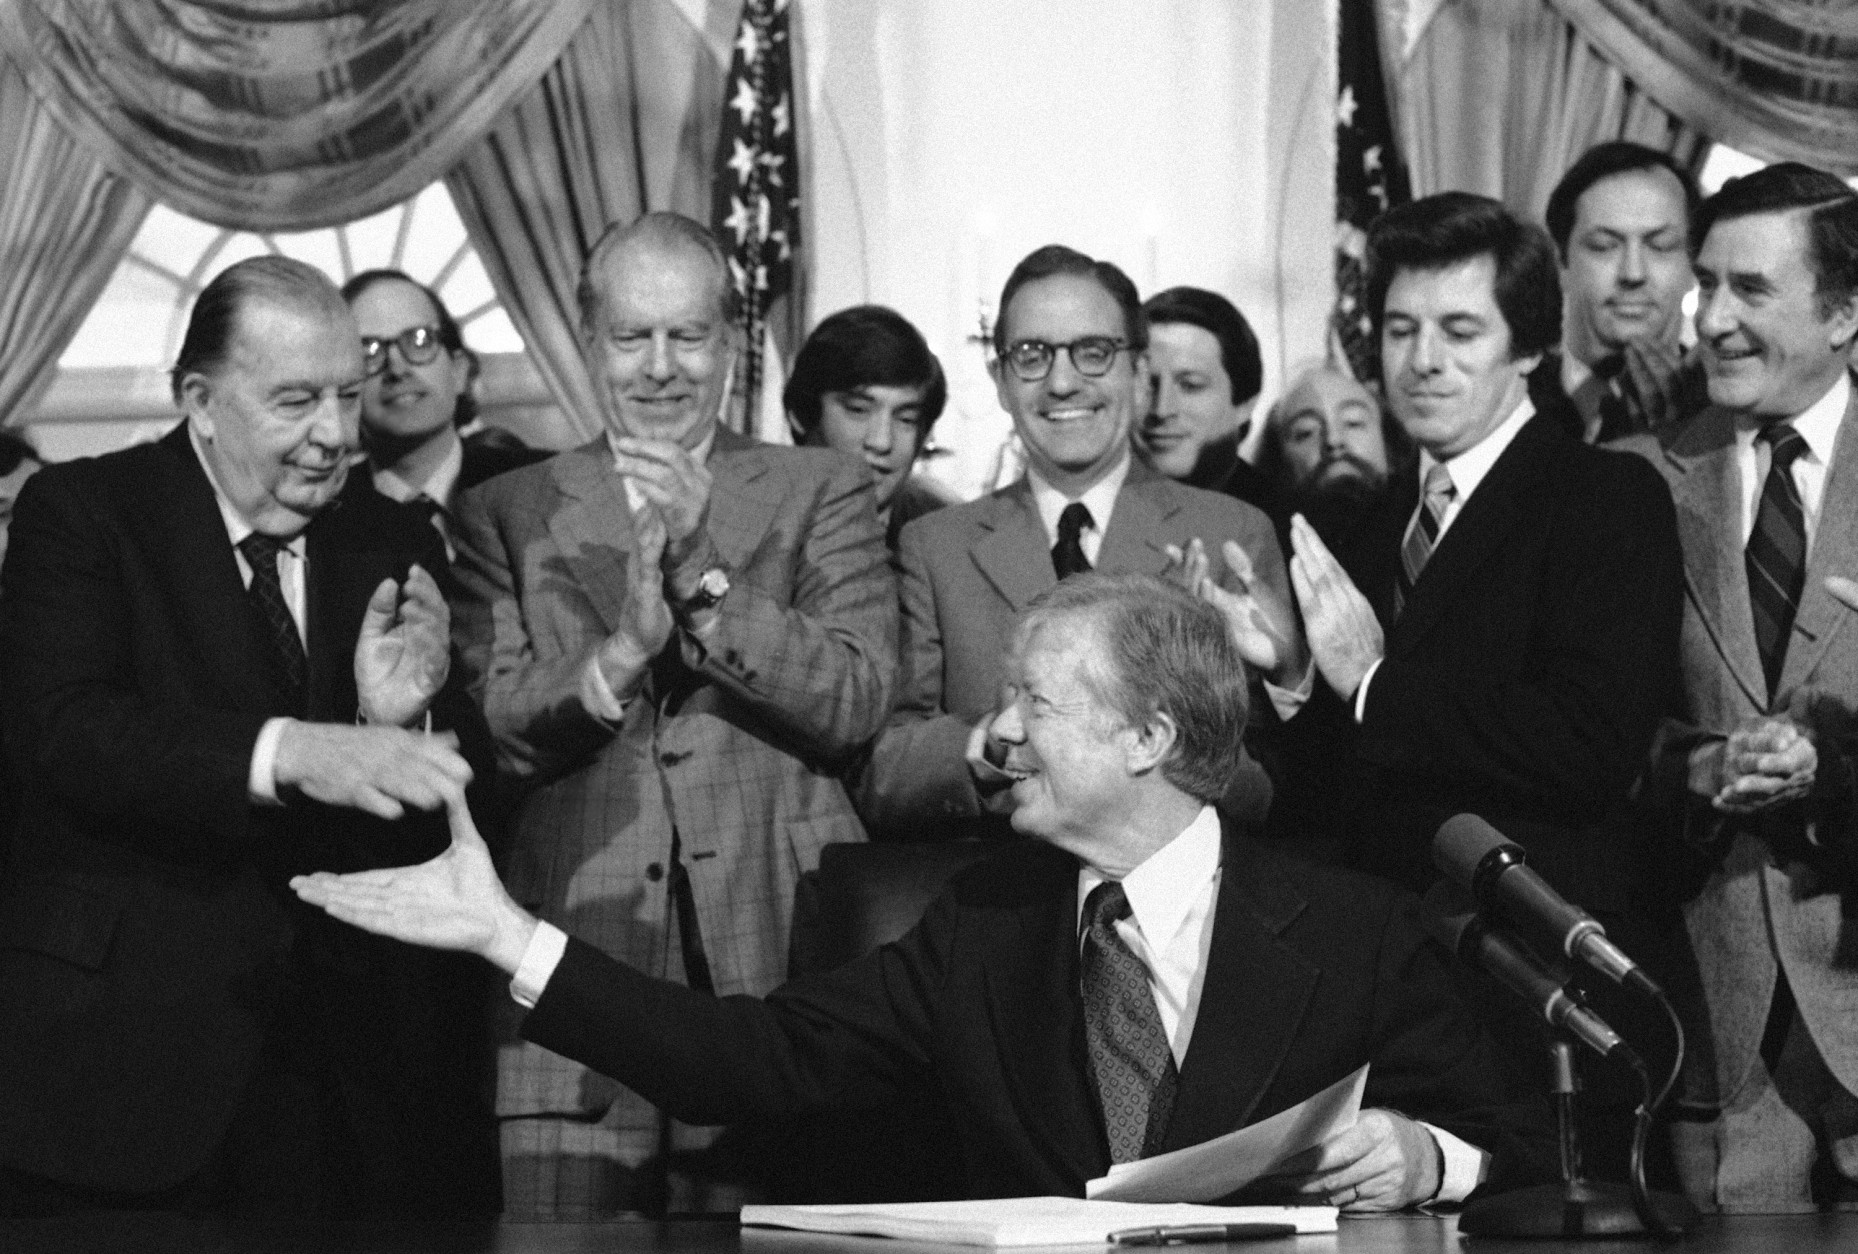 President Jimmy Carter reaches over to shake hands with Sen. Randolph Jennings, D-W.Va., left, after signing the environmental Superfund legislation in the Cabinet Room of the White House in Washington on Dec. 11, 1980. Behind Carter from left: Jennings; Sen. Robert Stafford, R-Vt., applauding; Rep. George Mitchell, D-ME., behind Carter; Rep. Al Gore, D-TN; Rep. James J. Florio, D-N.J., also applauding; Sen. Bill Bradley, D-N.J., behind Florio; and Sen. John H. Chafee, R-R.I., far right. (AP Photo/Dennis Cook)